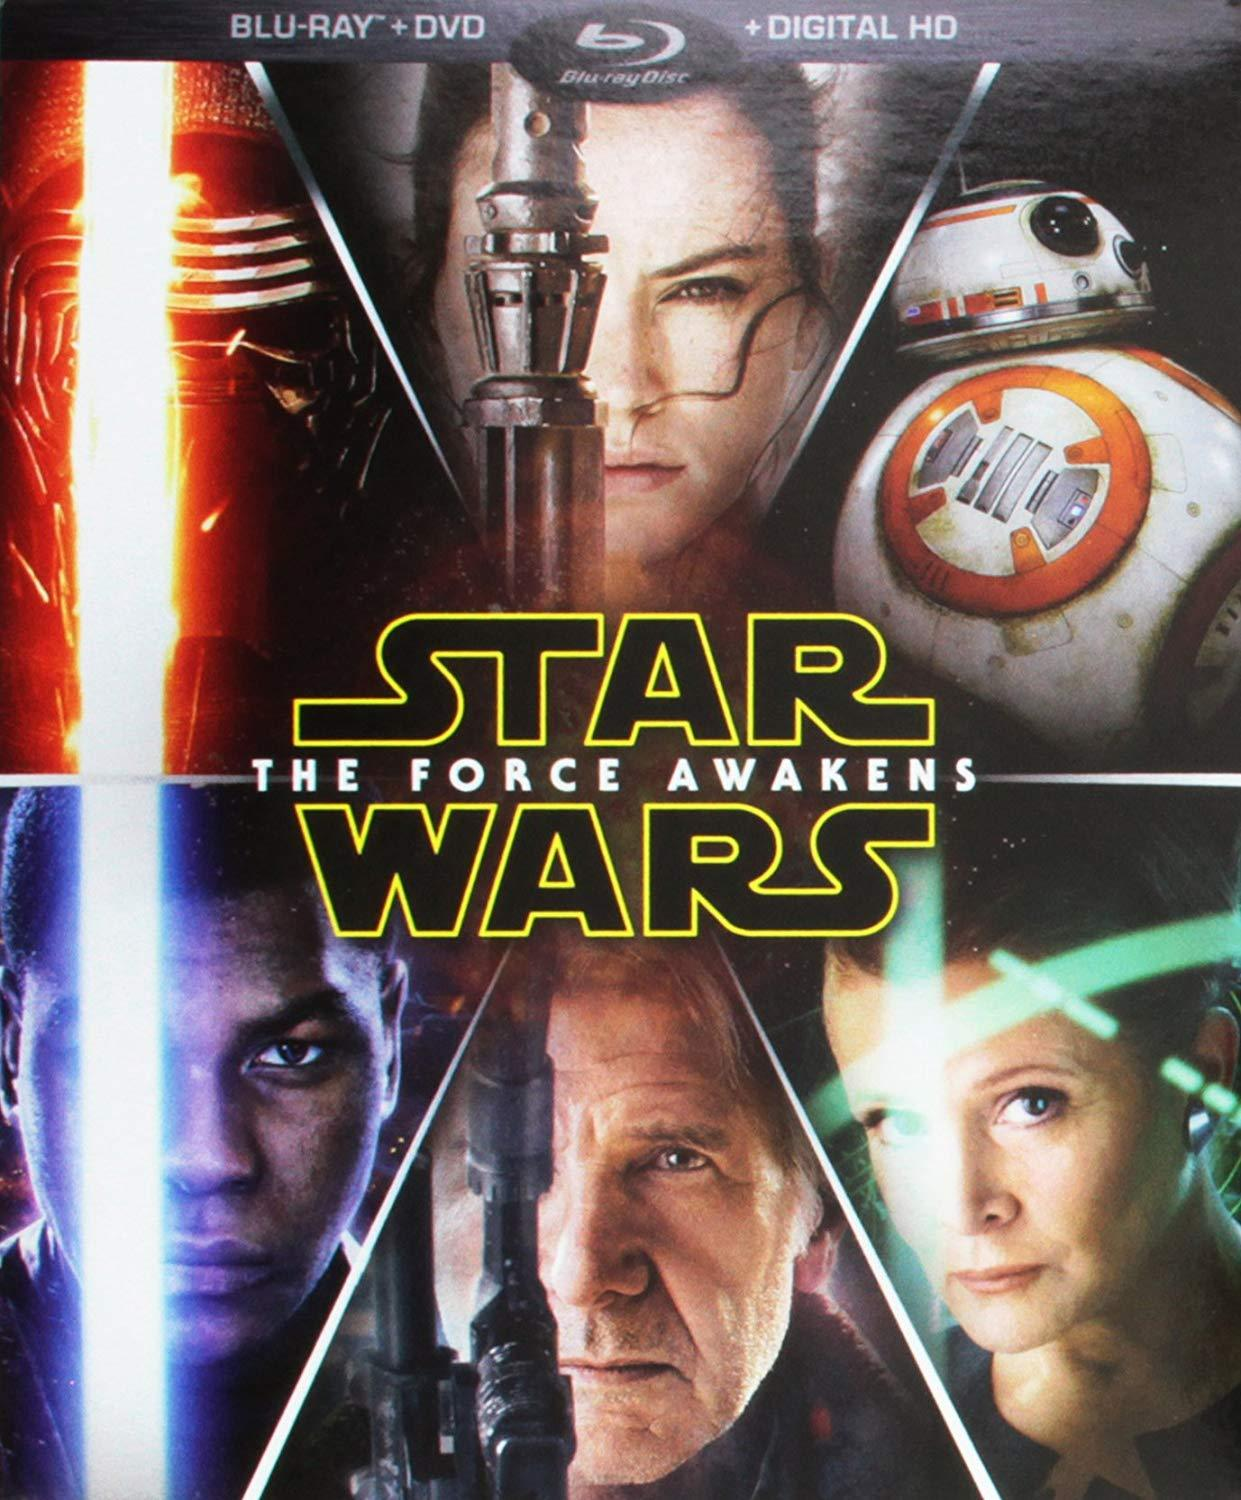 Star Wars The Force Awakens (Blu-ray + DVD + Digital) Target exclusive